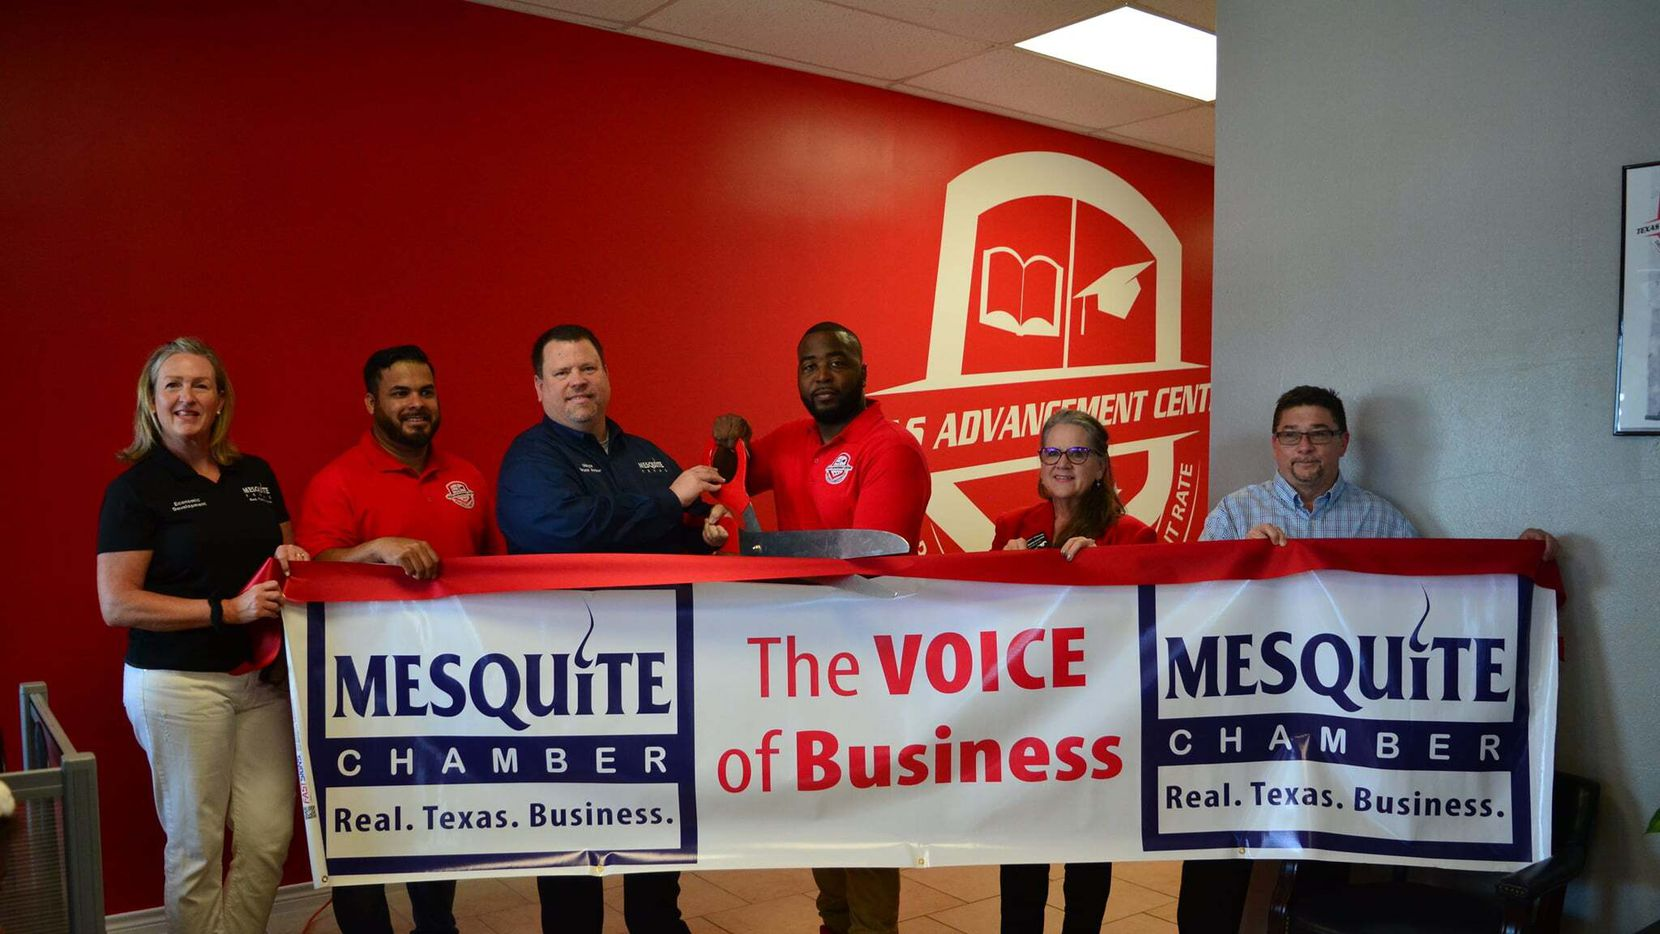 The Texas Advancement Center celebrated its grand opening in Mesquite last weekend, offering free education and job training to qualified adults 17 and older. (Courtesy Texas Advancement Center)